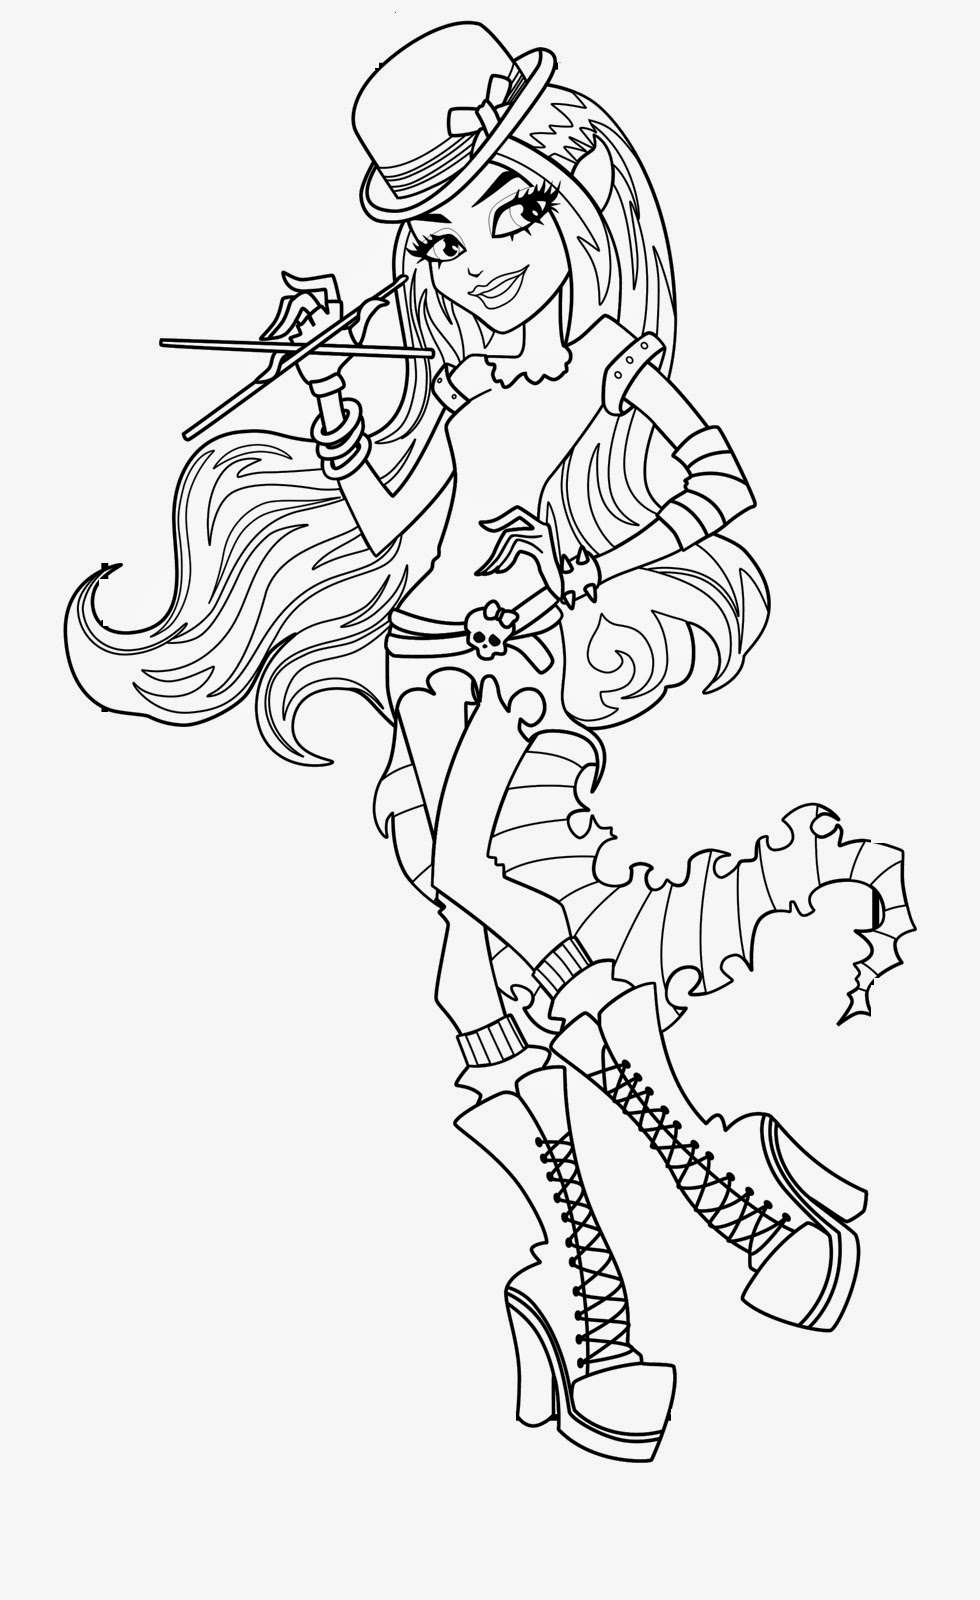 free colouring pages monster high coloring pages monster high coloring pages free and printable free pages colouring high monster 1 1